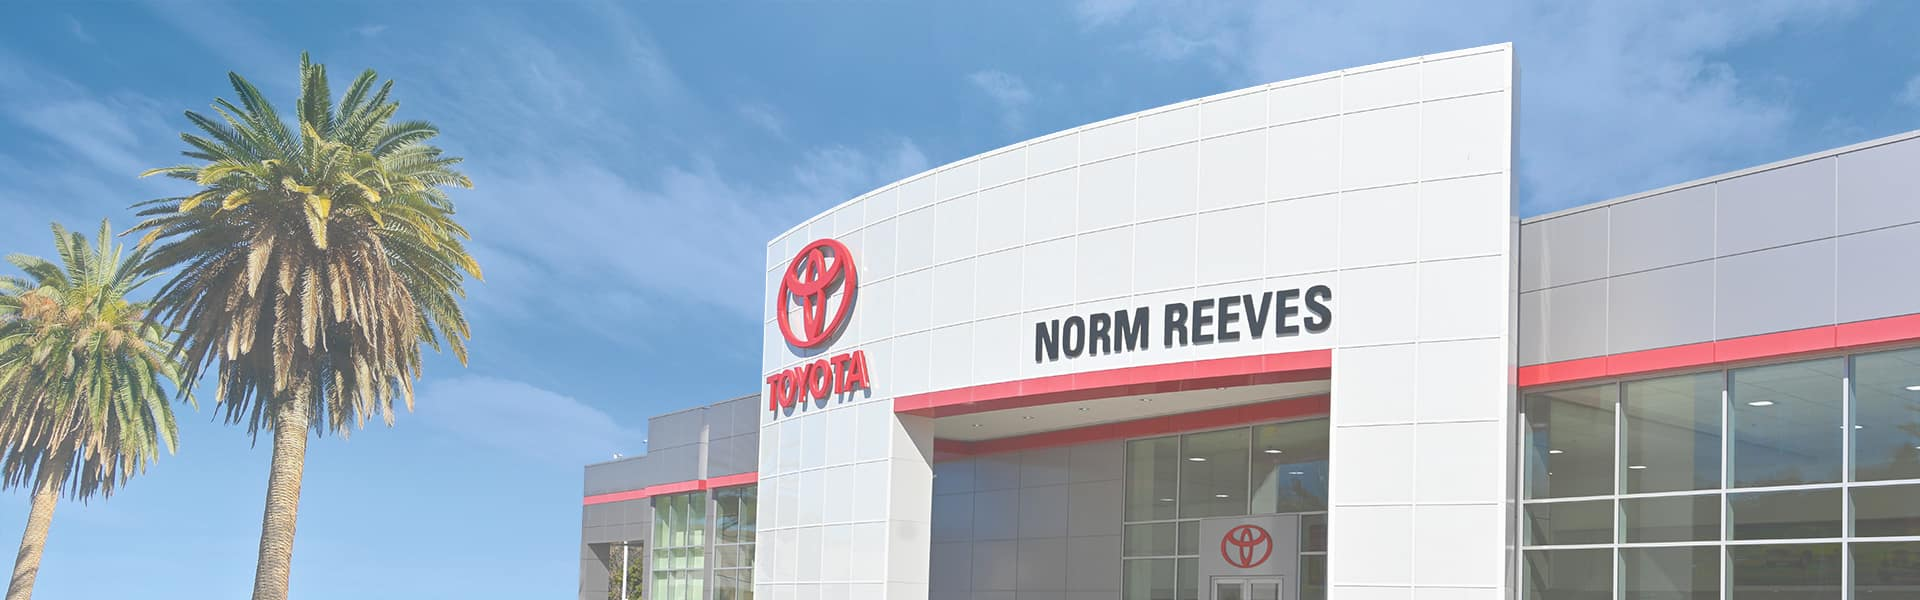 NR Your-San-Diego-Toyota-Dealer